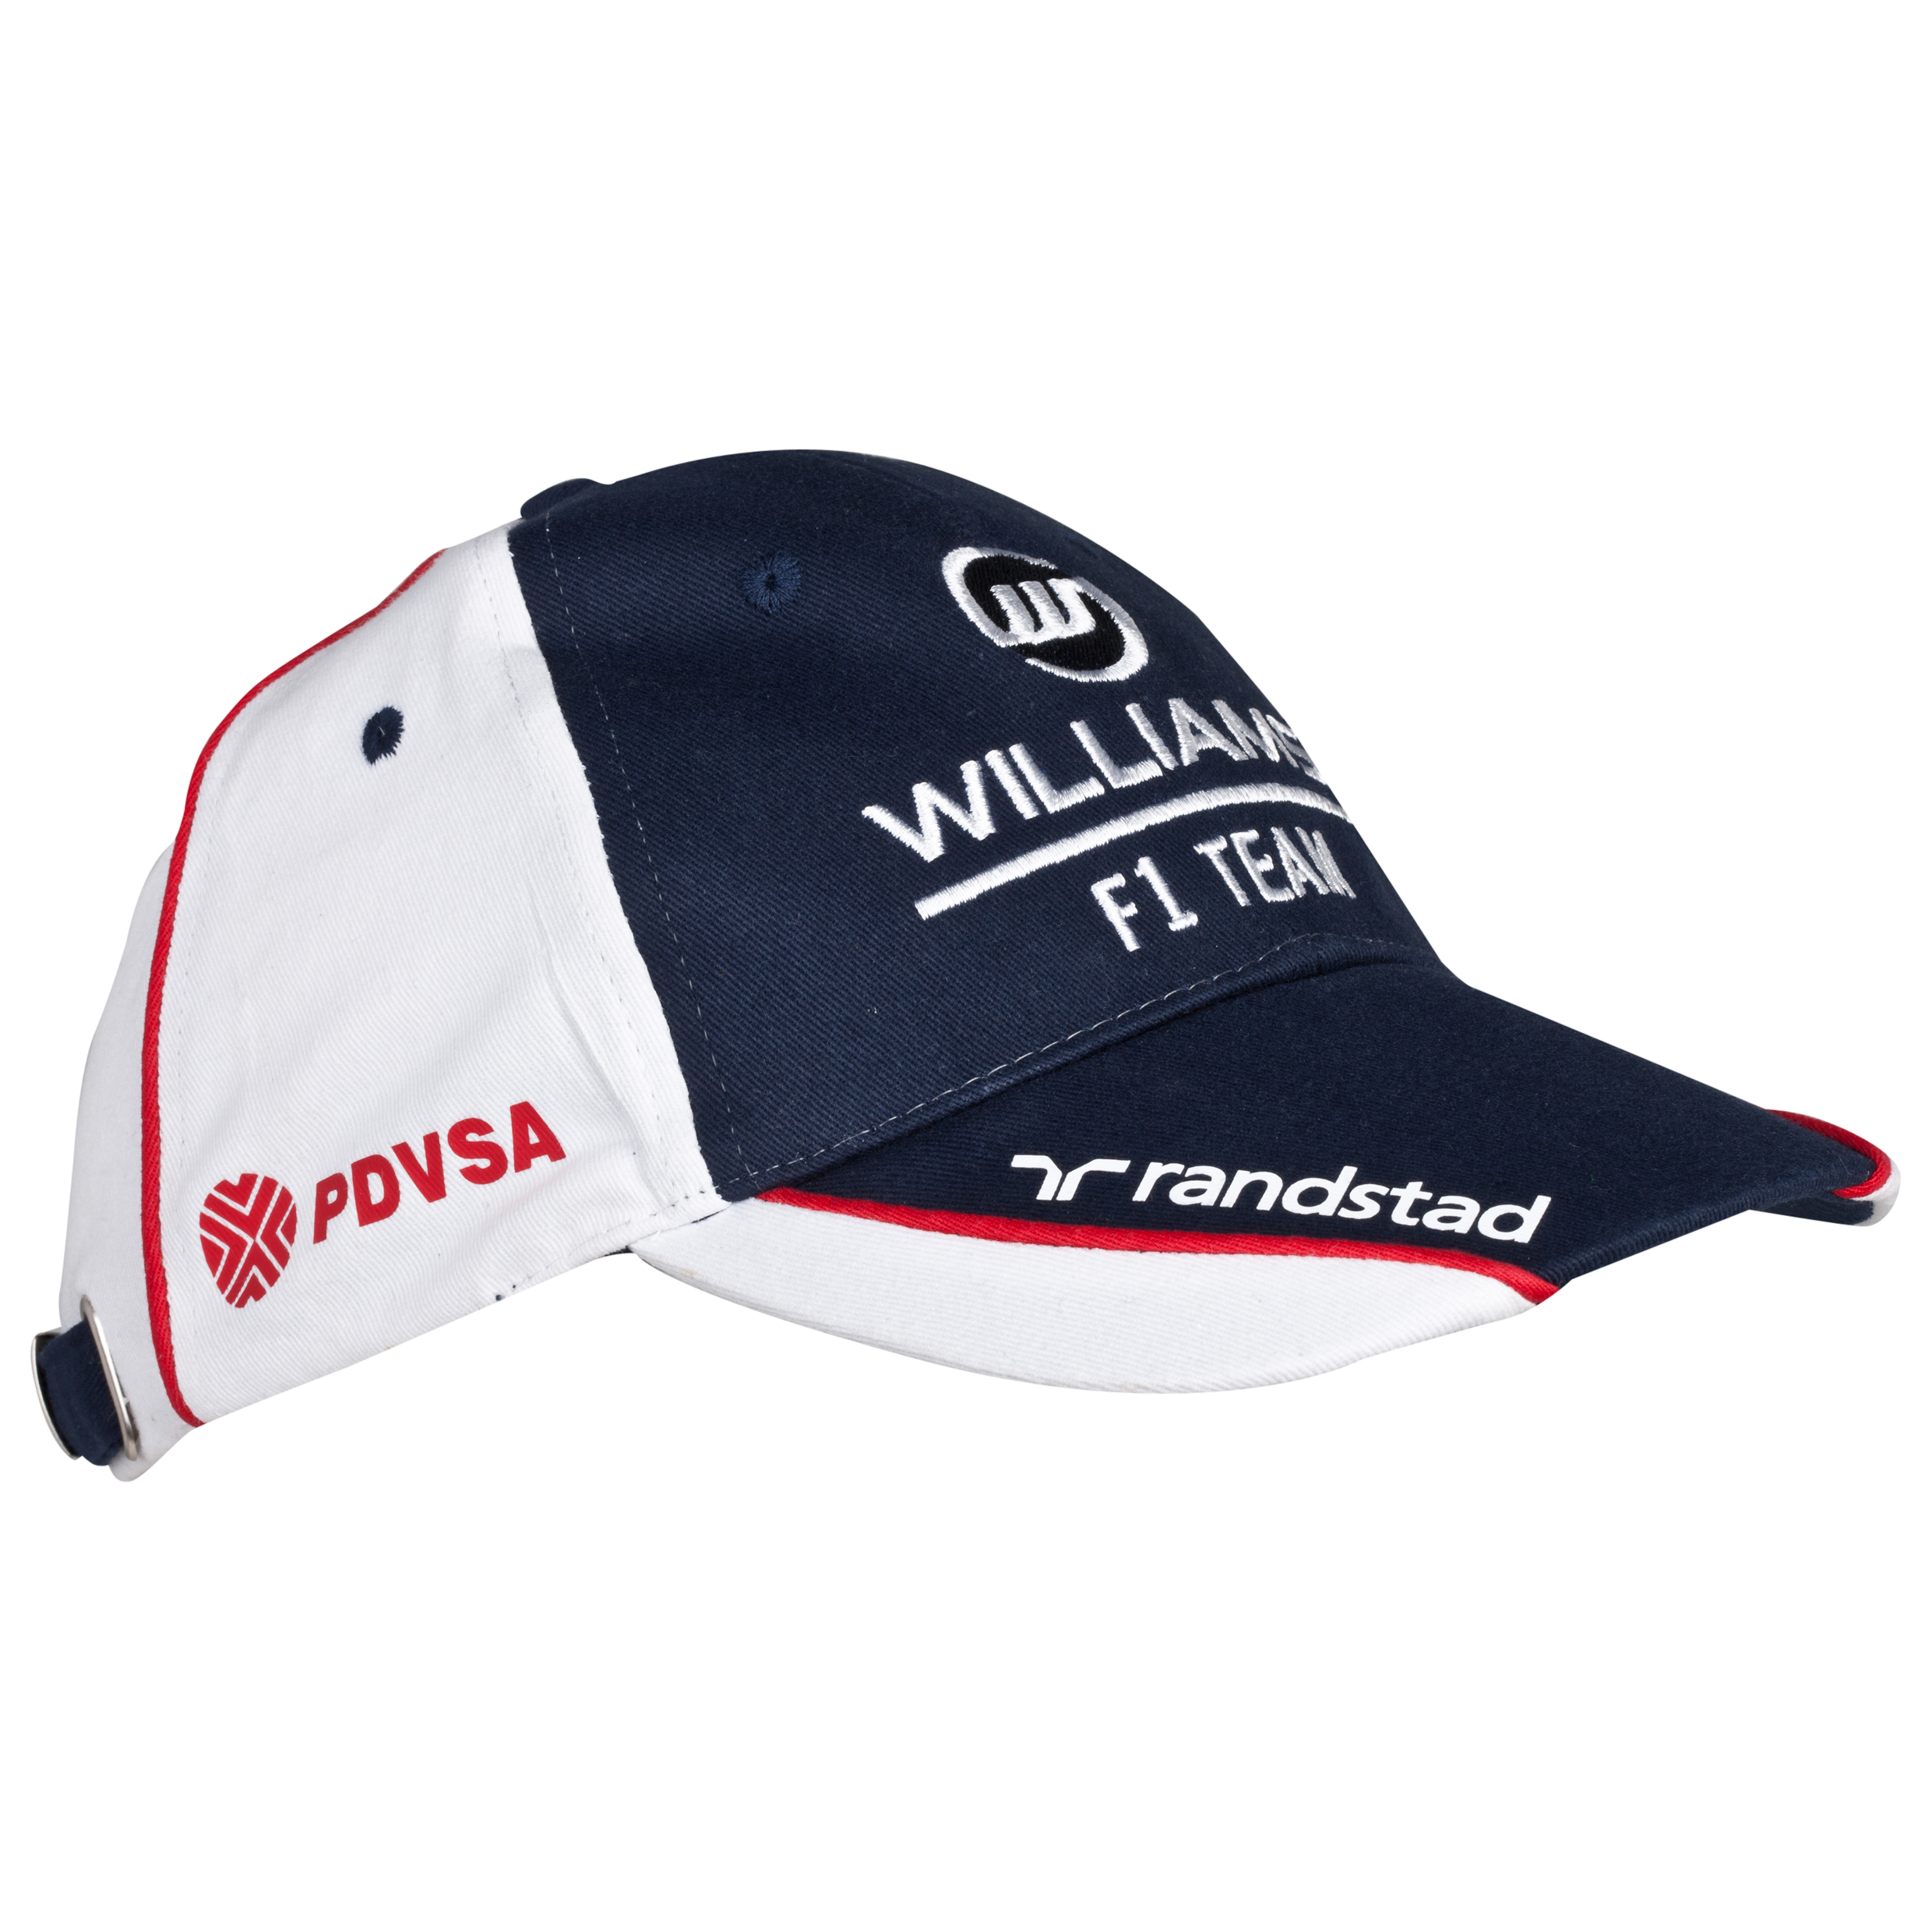 WILLIAMS F1 Team 2013 Bottas Drivers Cap